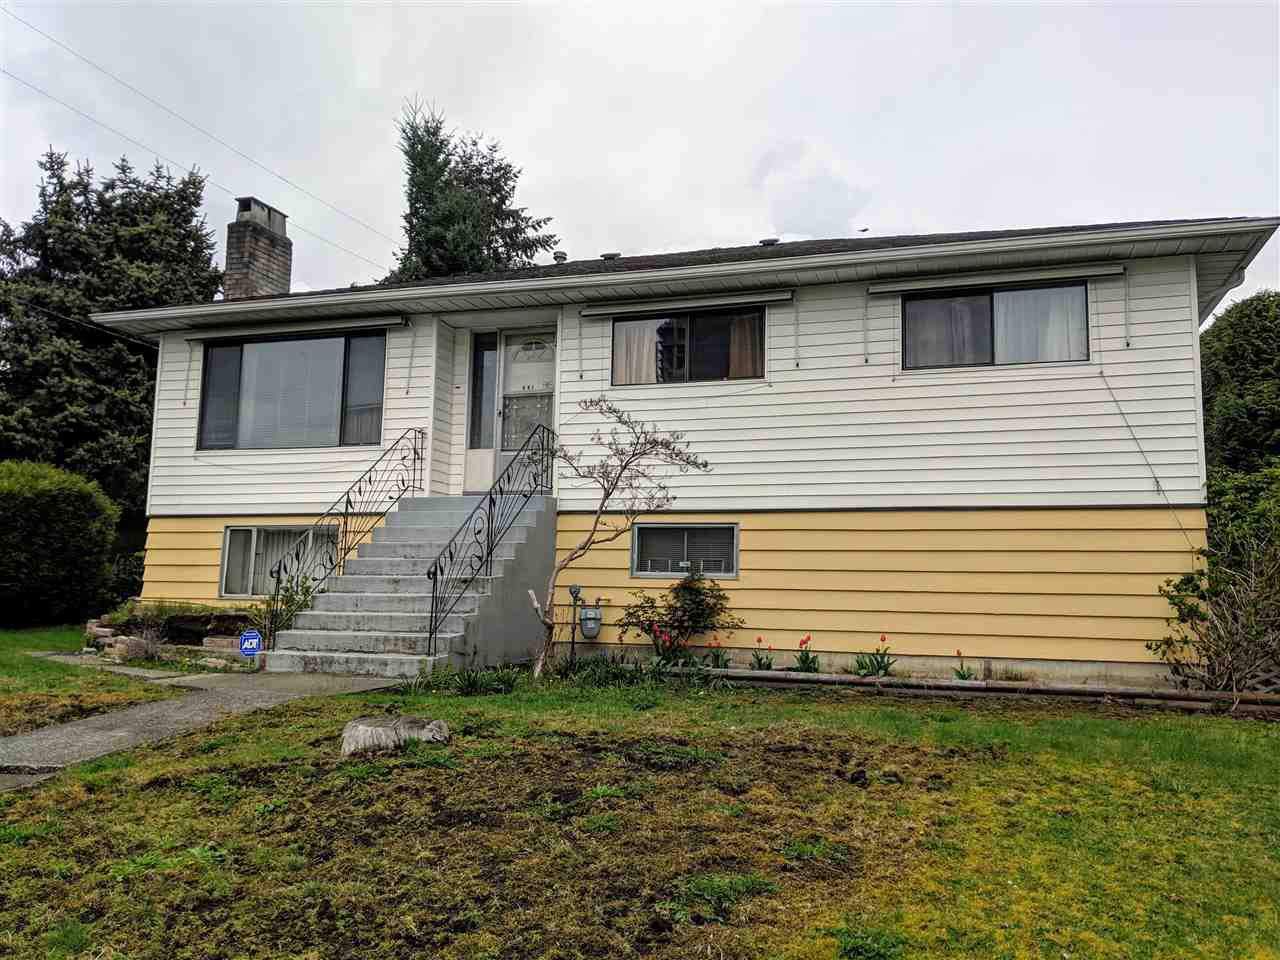 Main Photo: 641 ASPEN Street in Coquitlam: Coquitlam West House for sale : MLS®# R2359214